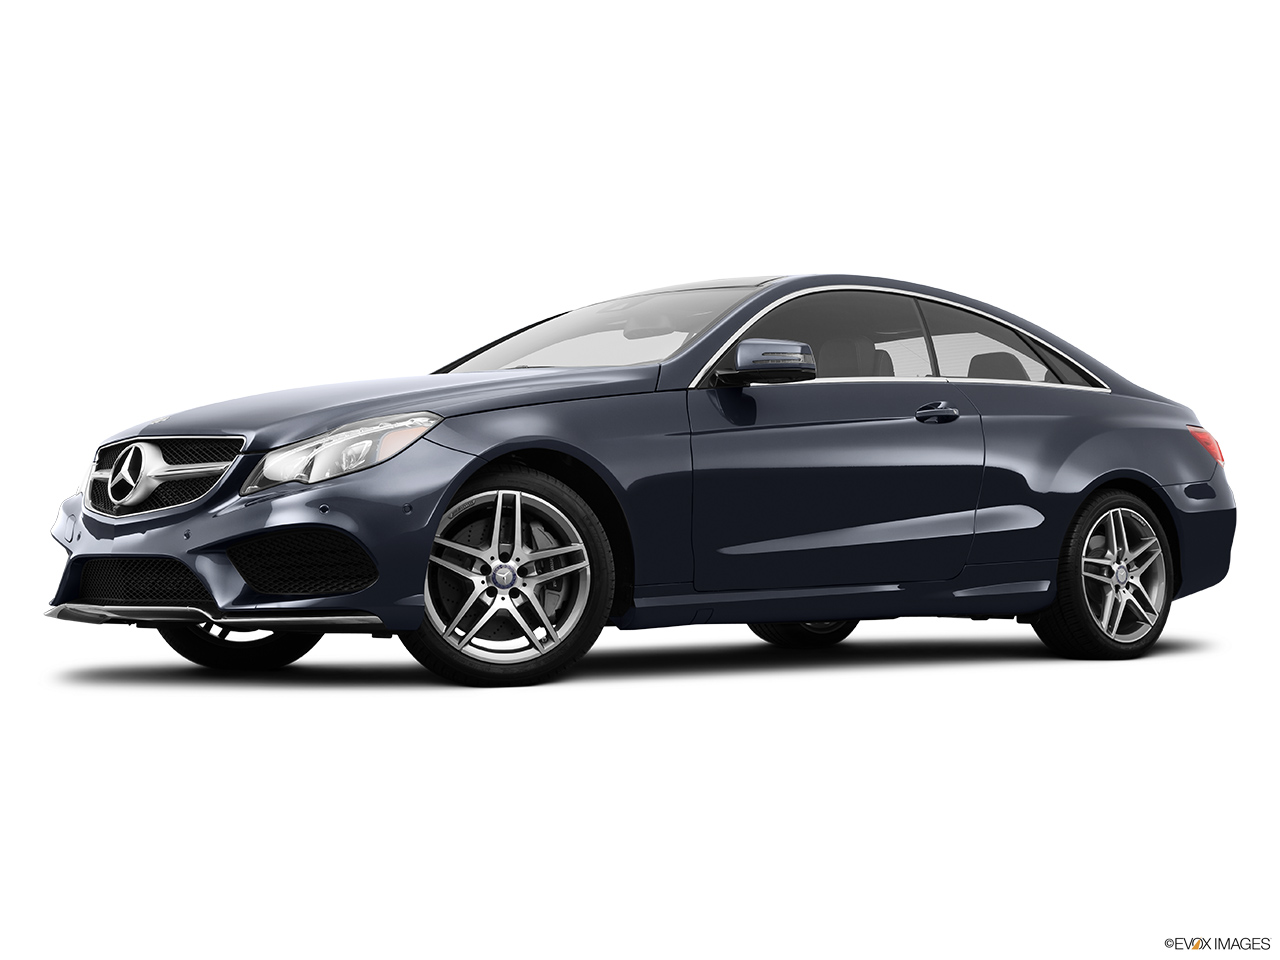 2015 mercedes benz e class coupe e550 rwd low wide front 5 8